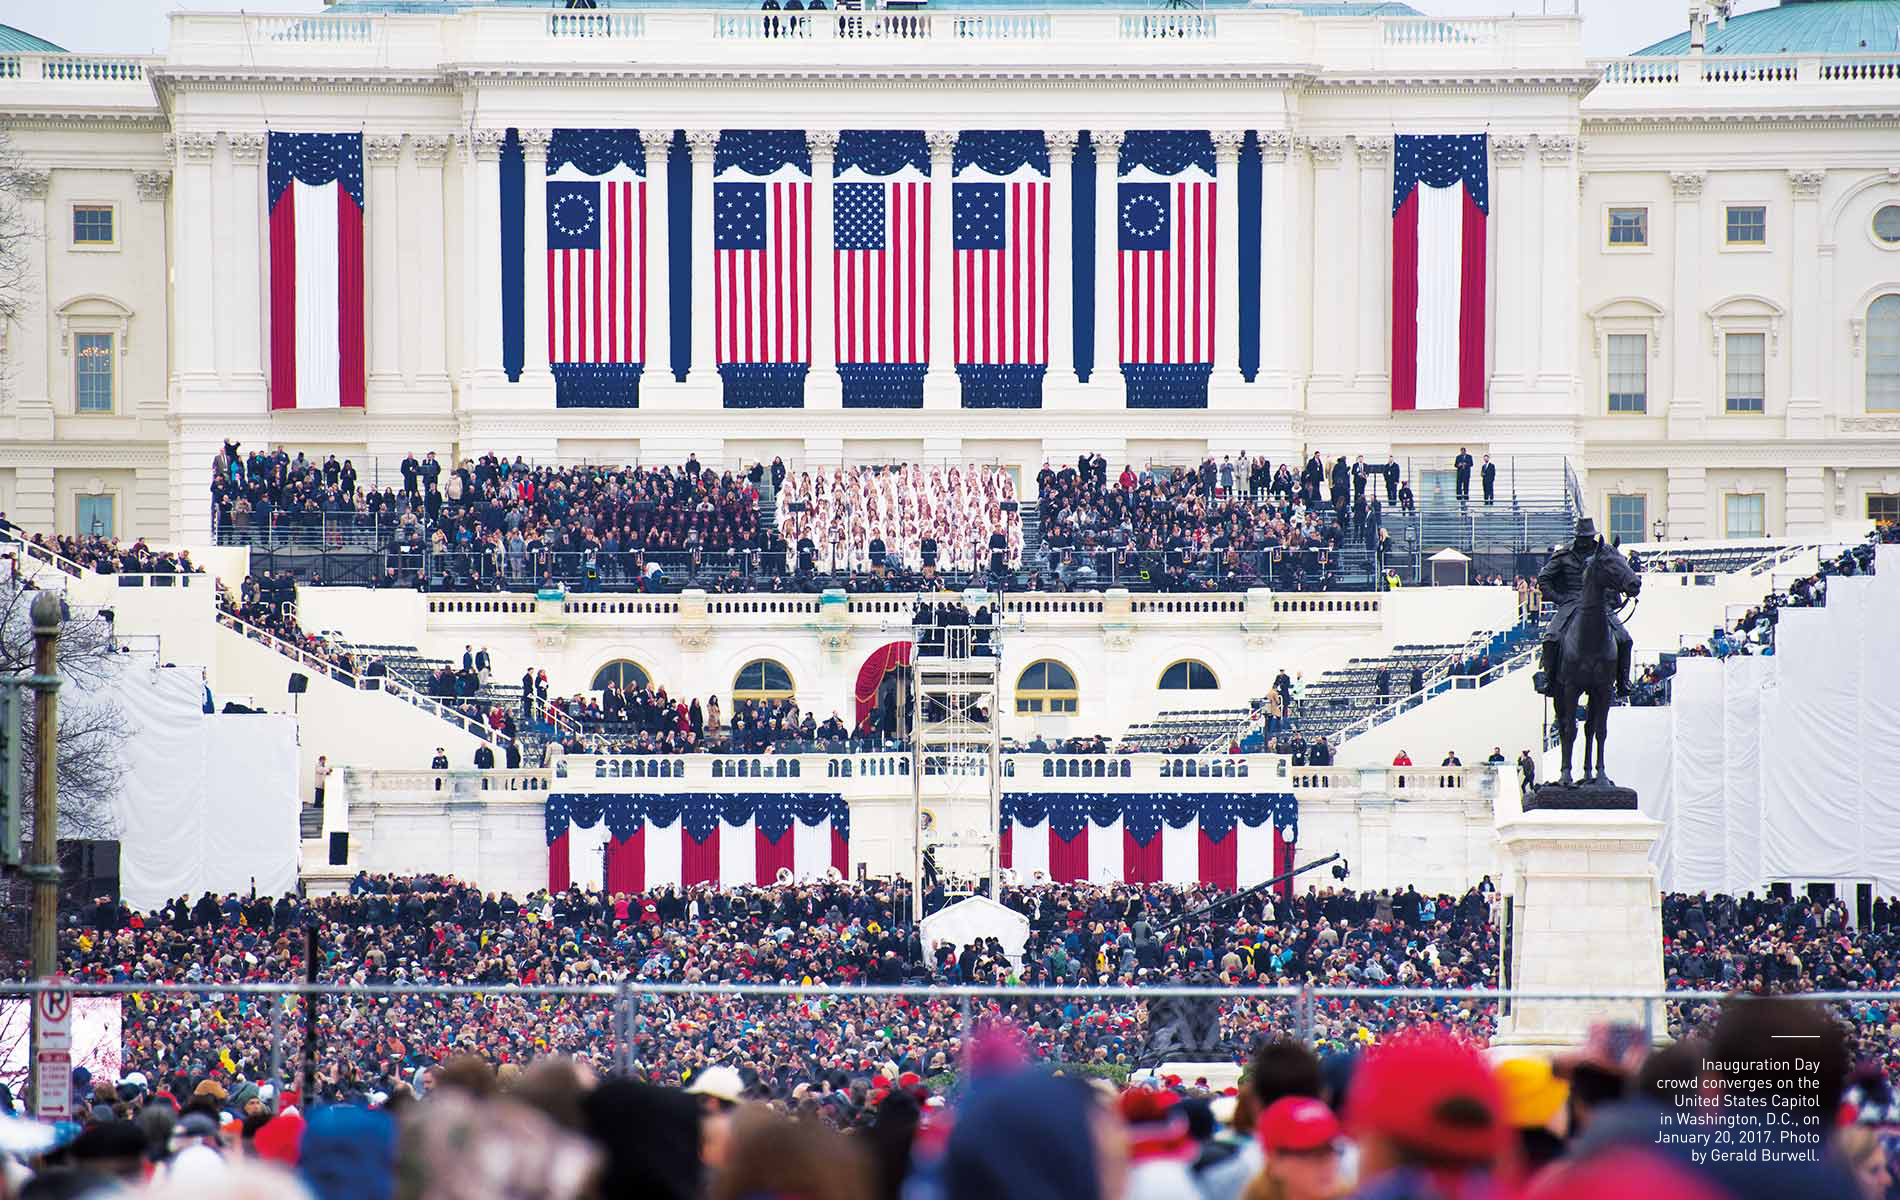 Inauguration Day crowd on the United States Capitol in Washington, D.C. January 20, 2017